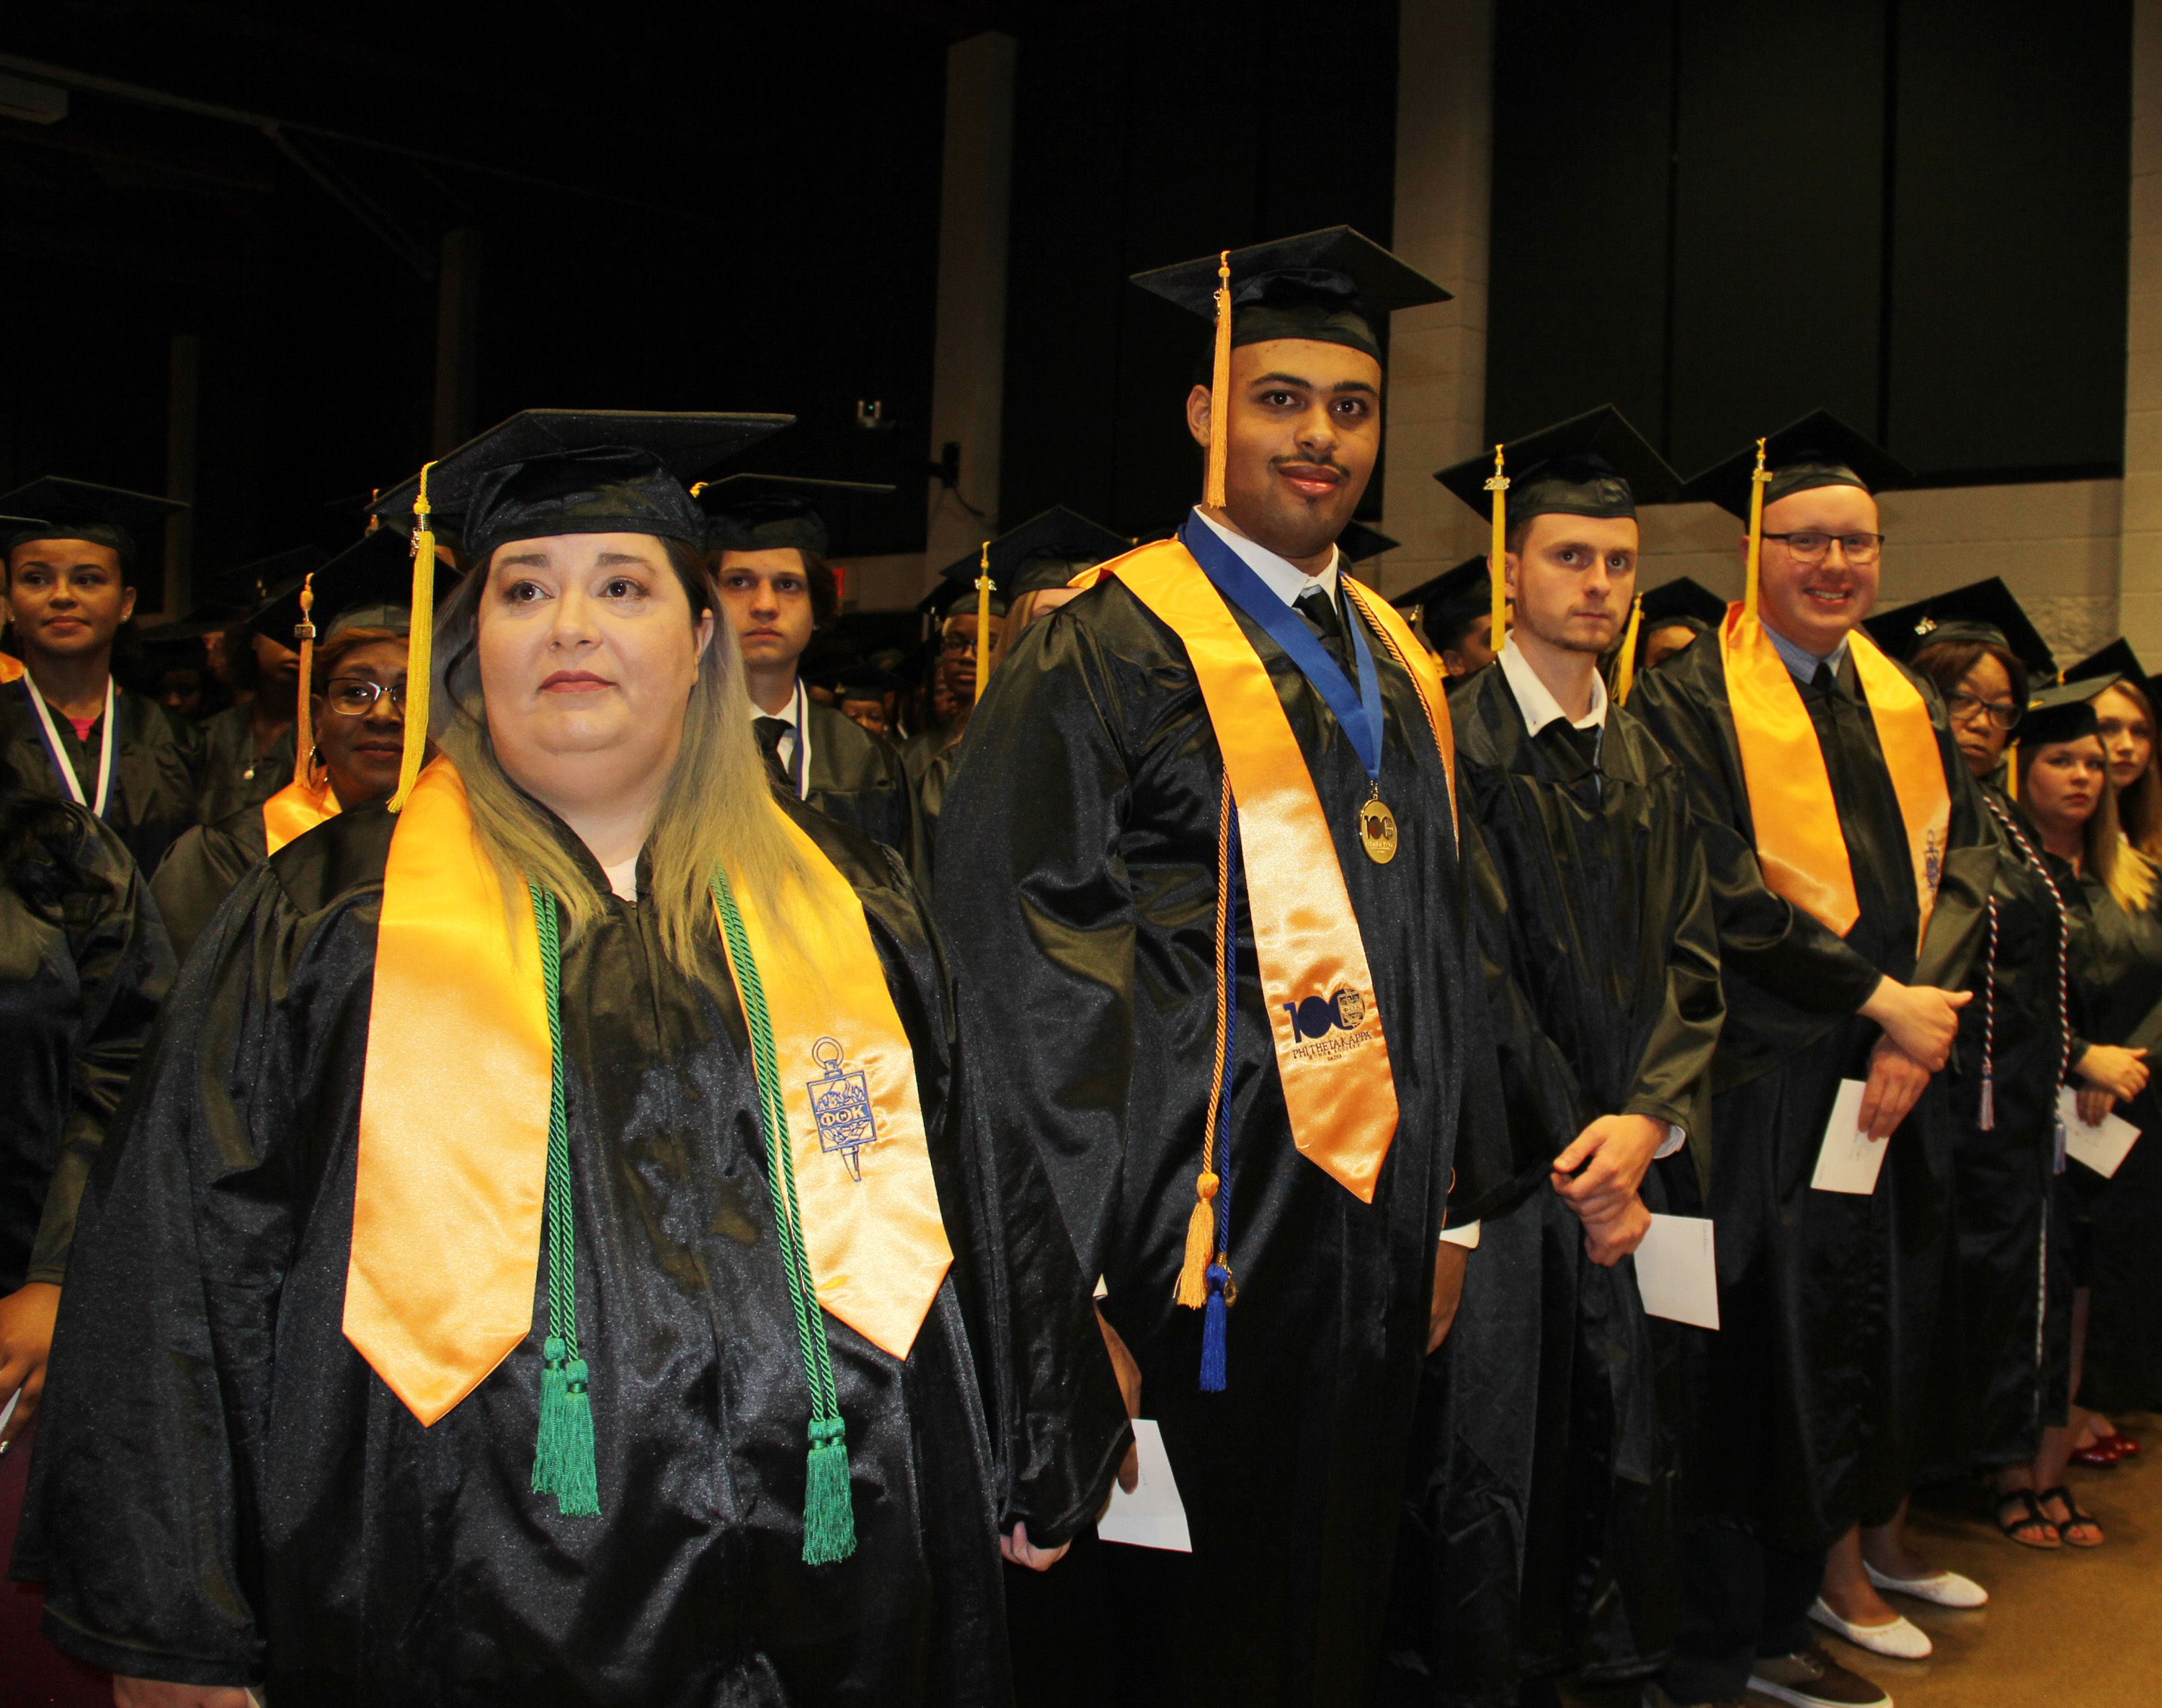 Paul D. Camp Community College Holds 48th Commencement Ceremony May 10, 2019